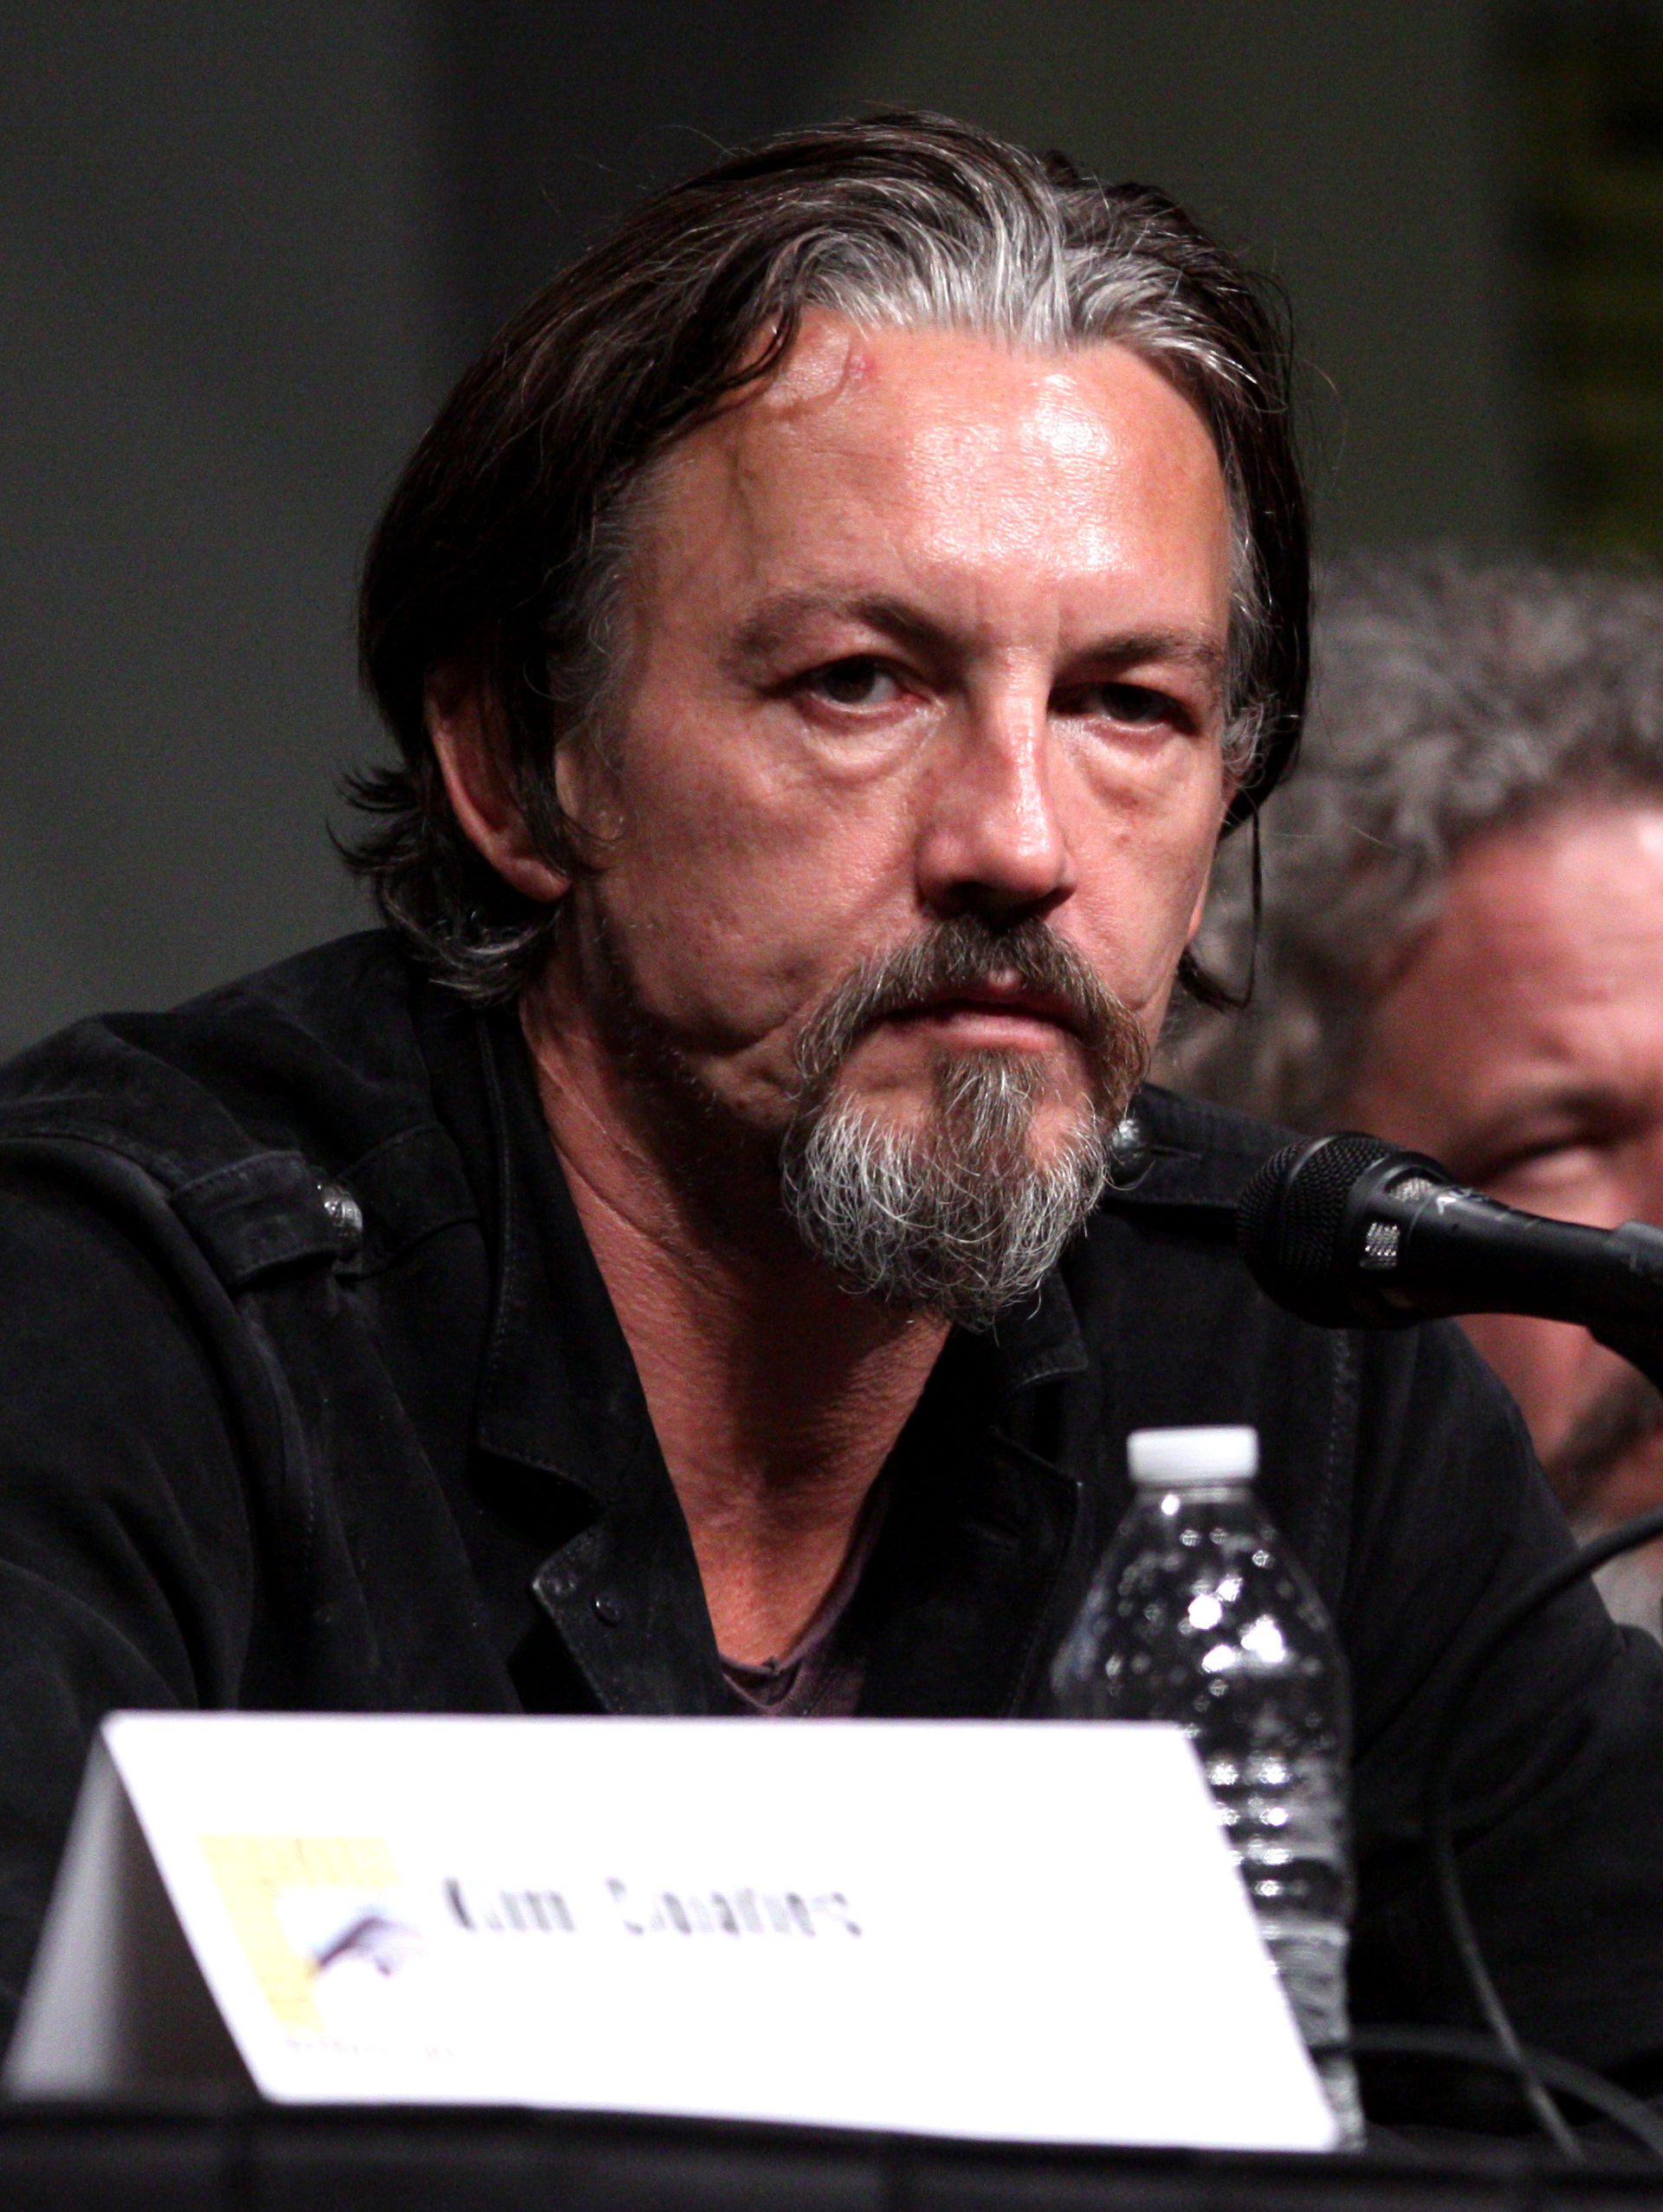 tommy flanagan actor wikipedia